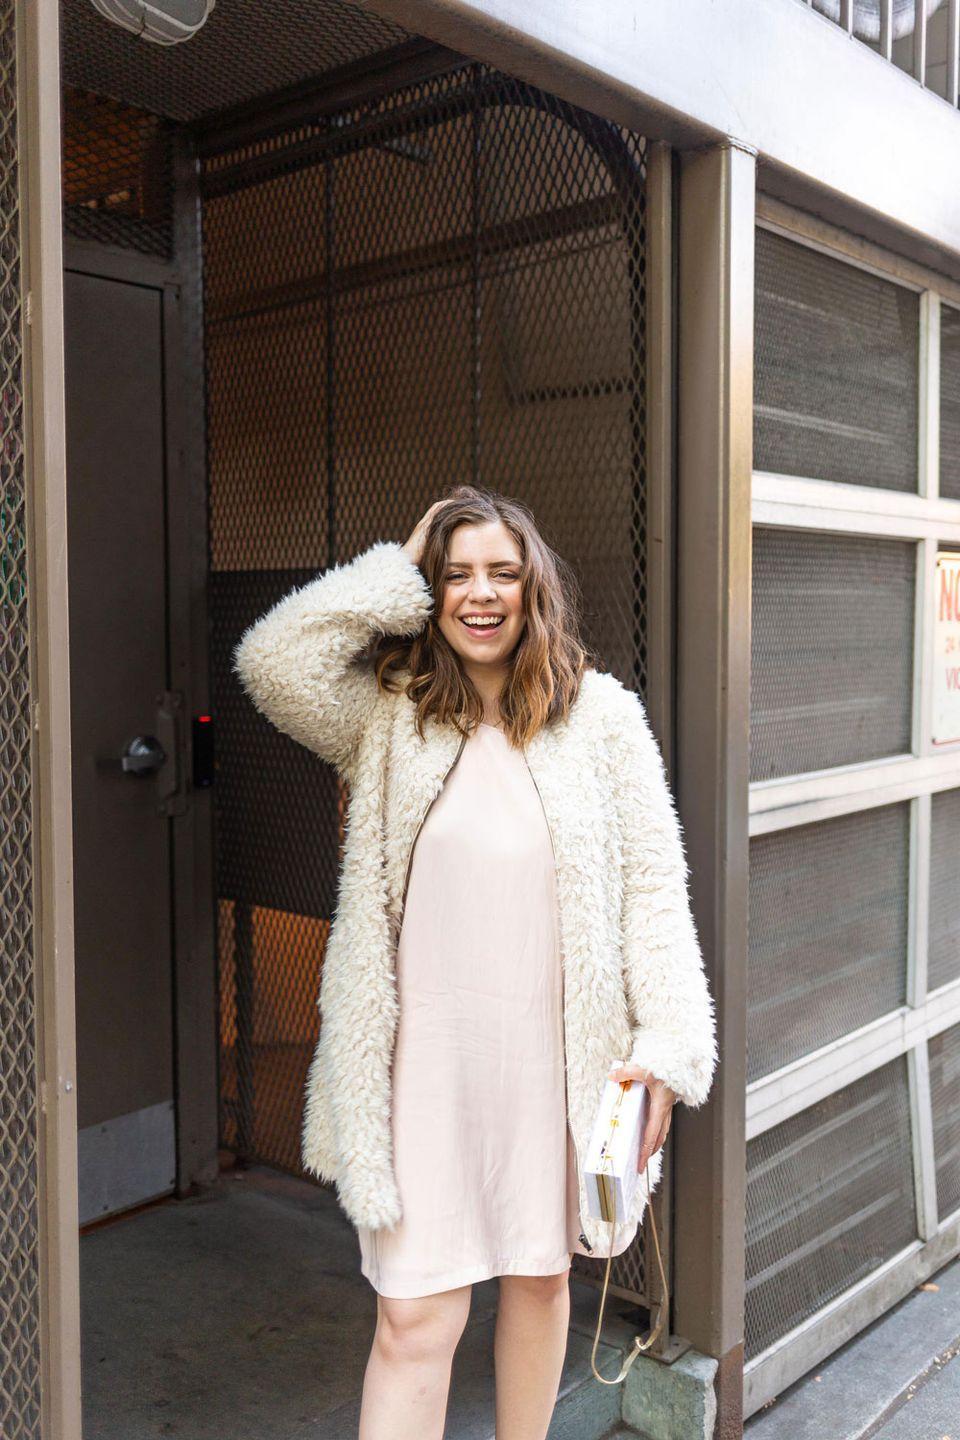 """<p>Truly, can anything match the iconic look of Carrie Bradshaw's """"naked dress,"""" the one she wore on her first date with Mr. Big? We think not. Throw a fur coat over the slip dress to make an effortless DIY Carrie.<br></p><p><em><a href=""""https://www.hellorigby.com/carrie-bradshaw-costume/"""" rel=""""nofollow noopener"""" target=""""_blank"""" data-ylk=""""slk:Get the tutorial and see more at Hello Rigby >>"""" class=""""link rapid-noclick-resp"""">Get the tutorial and see more at Hello Rigby >> </a></em></p>"""